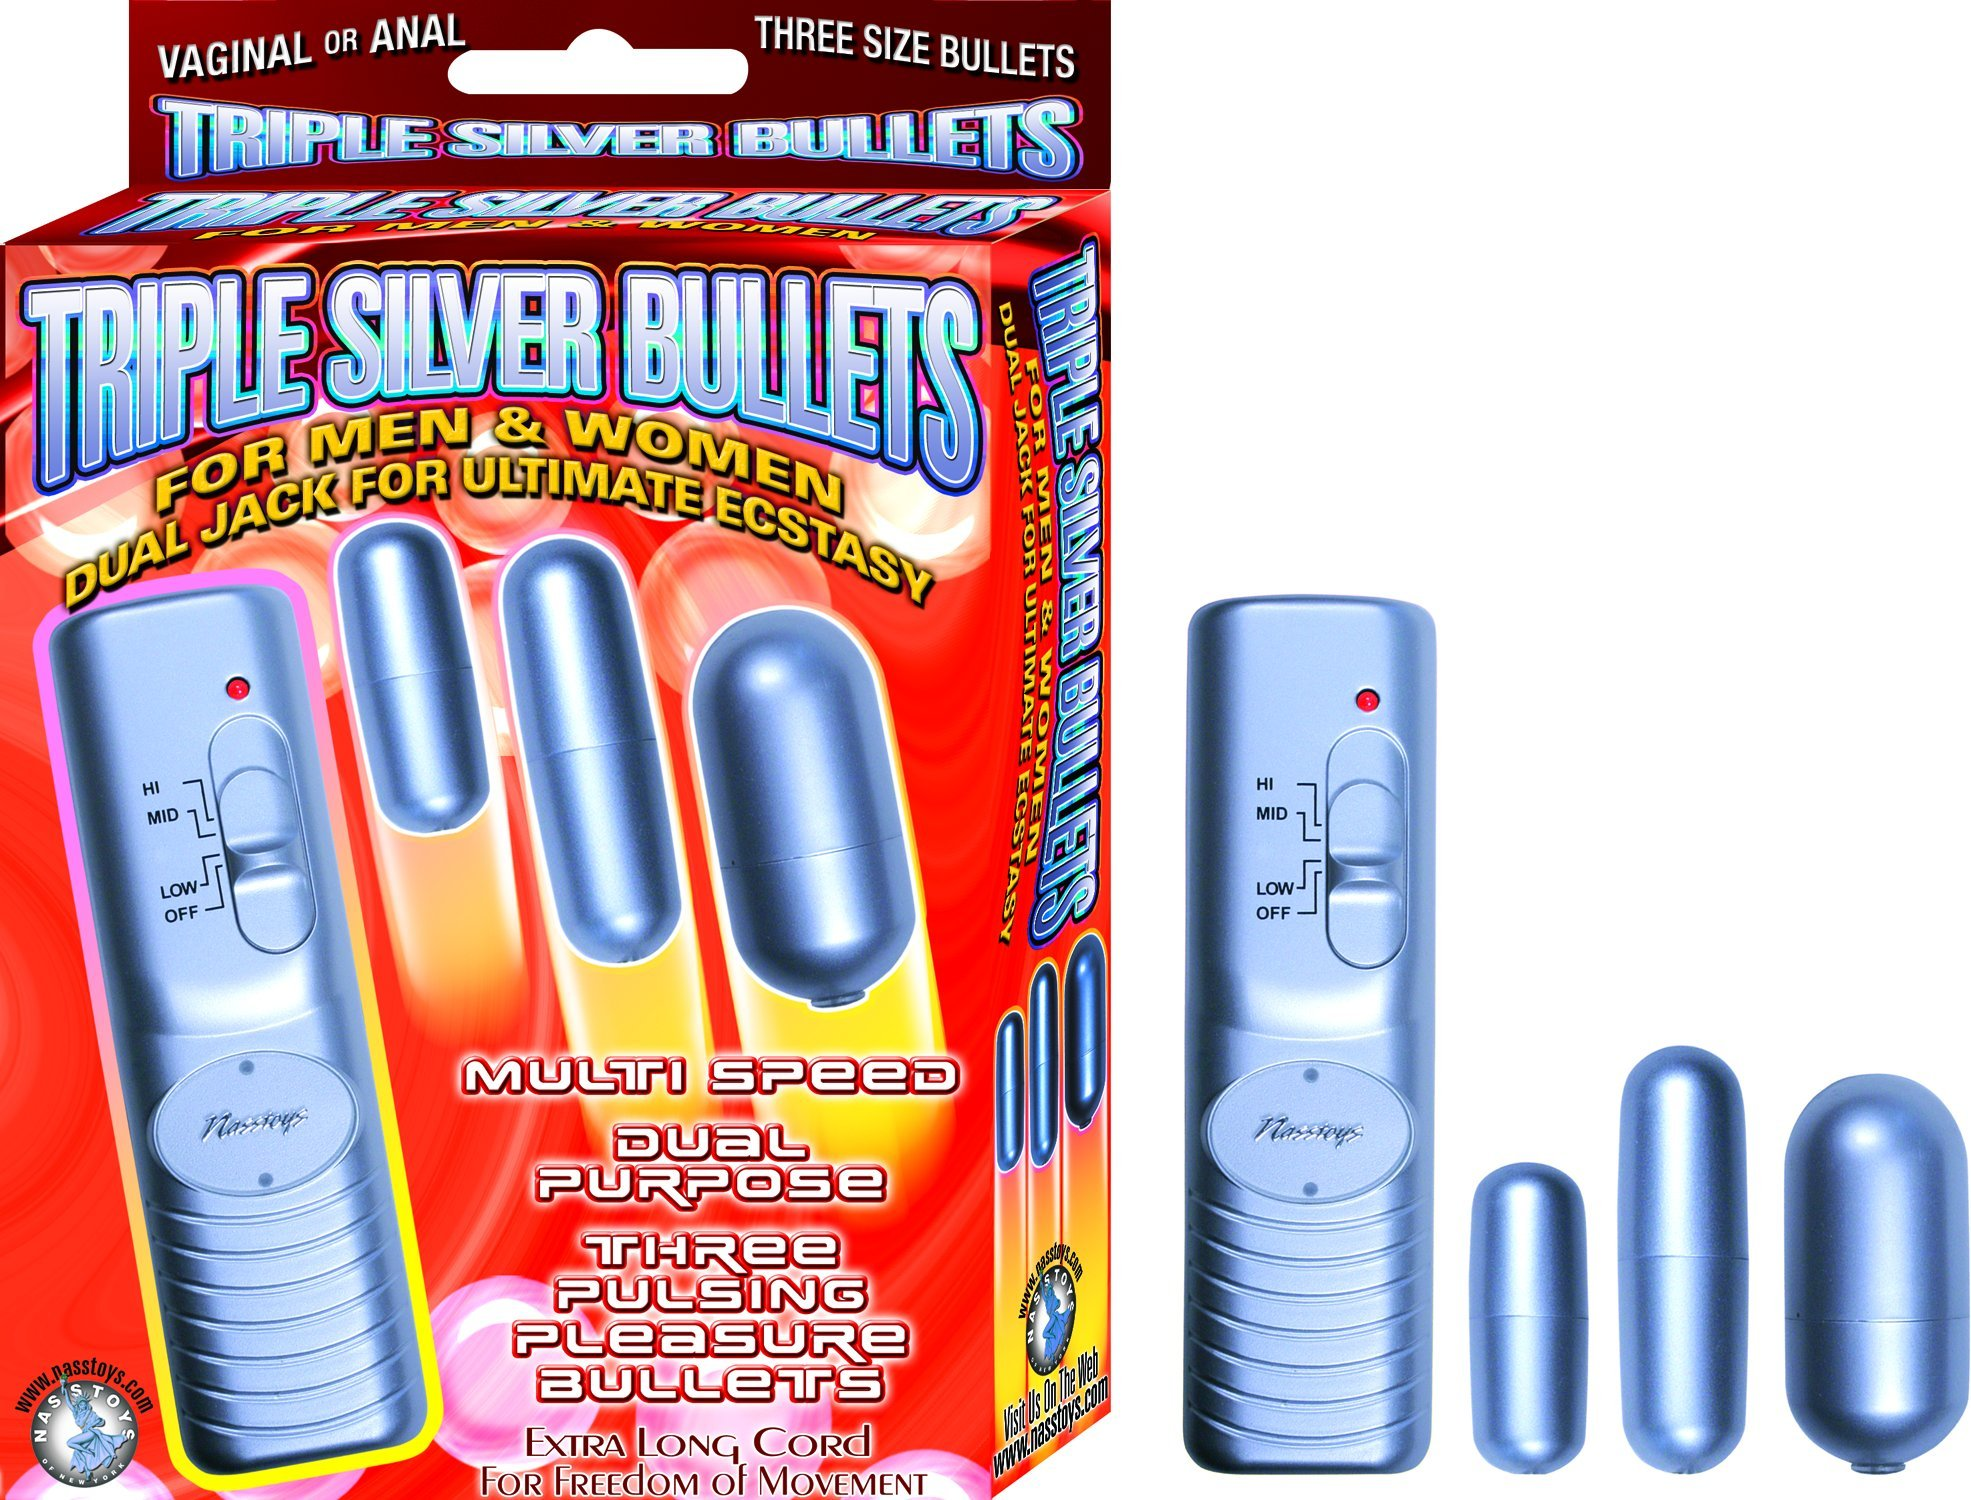 Nasstoys Multi-speed Vaginal or Anal Pulsing Pleasure Bullets, Various-sized, Silver